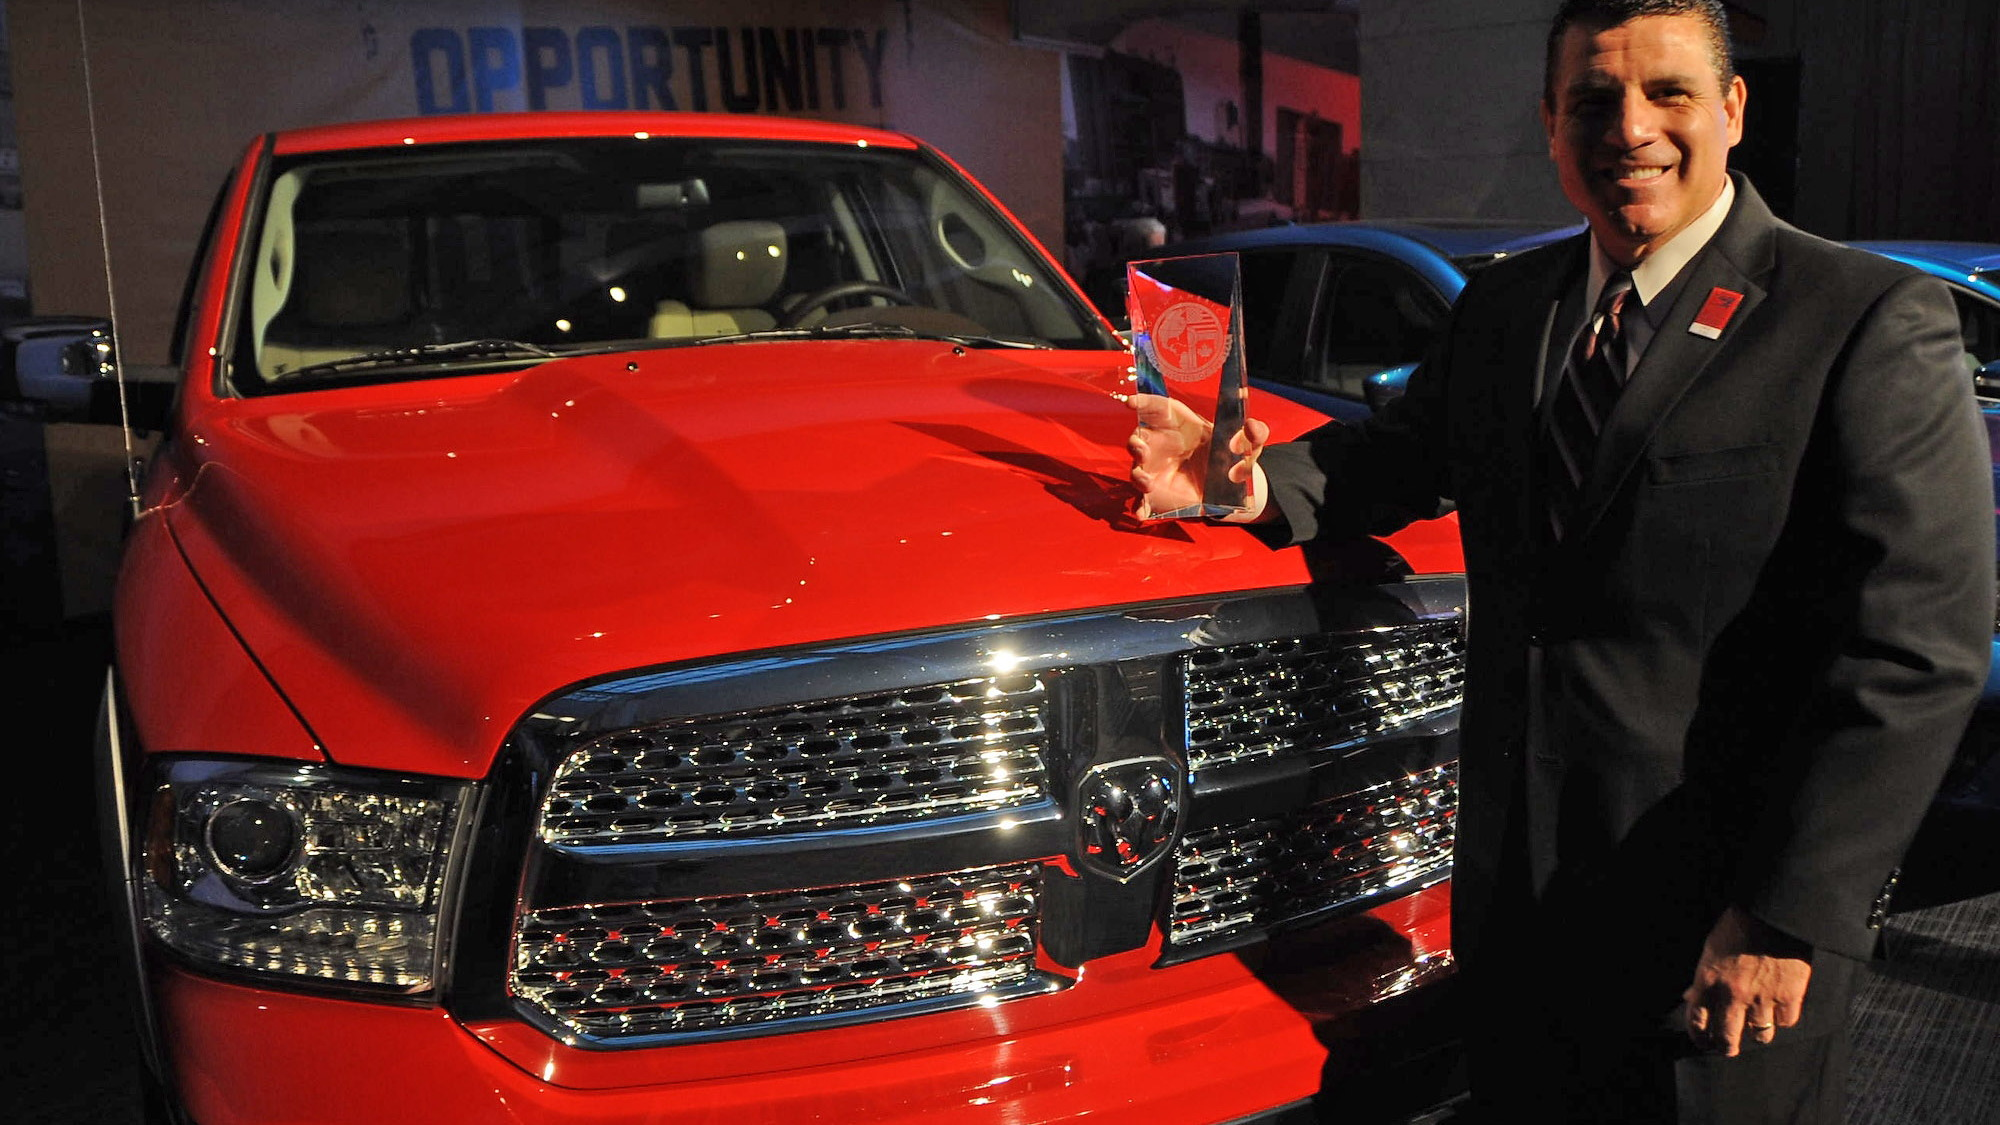 2013 RAM 1500 wins the 2013 North American Truck of the Year Award at the 2013 Detroit Auto Show